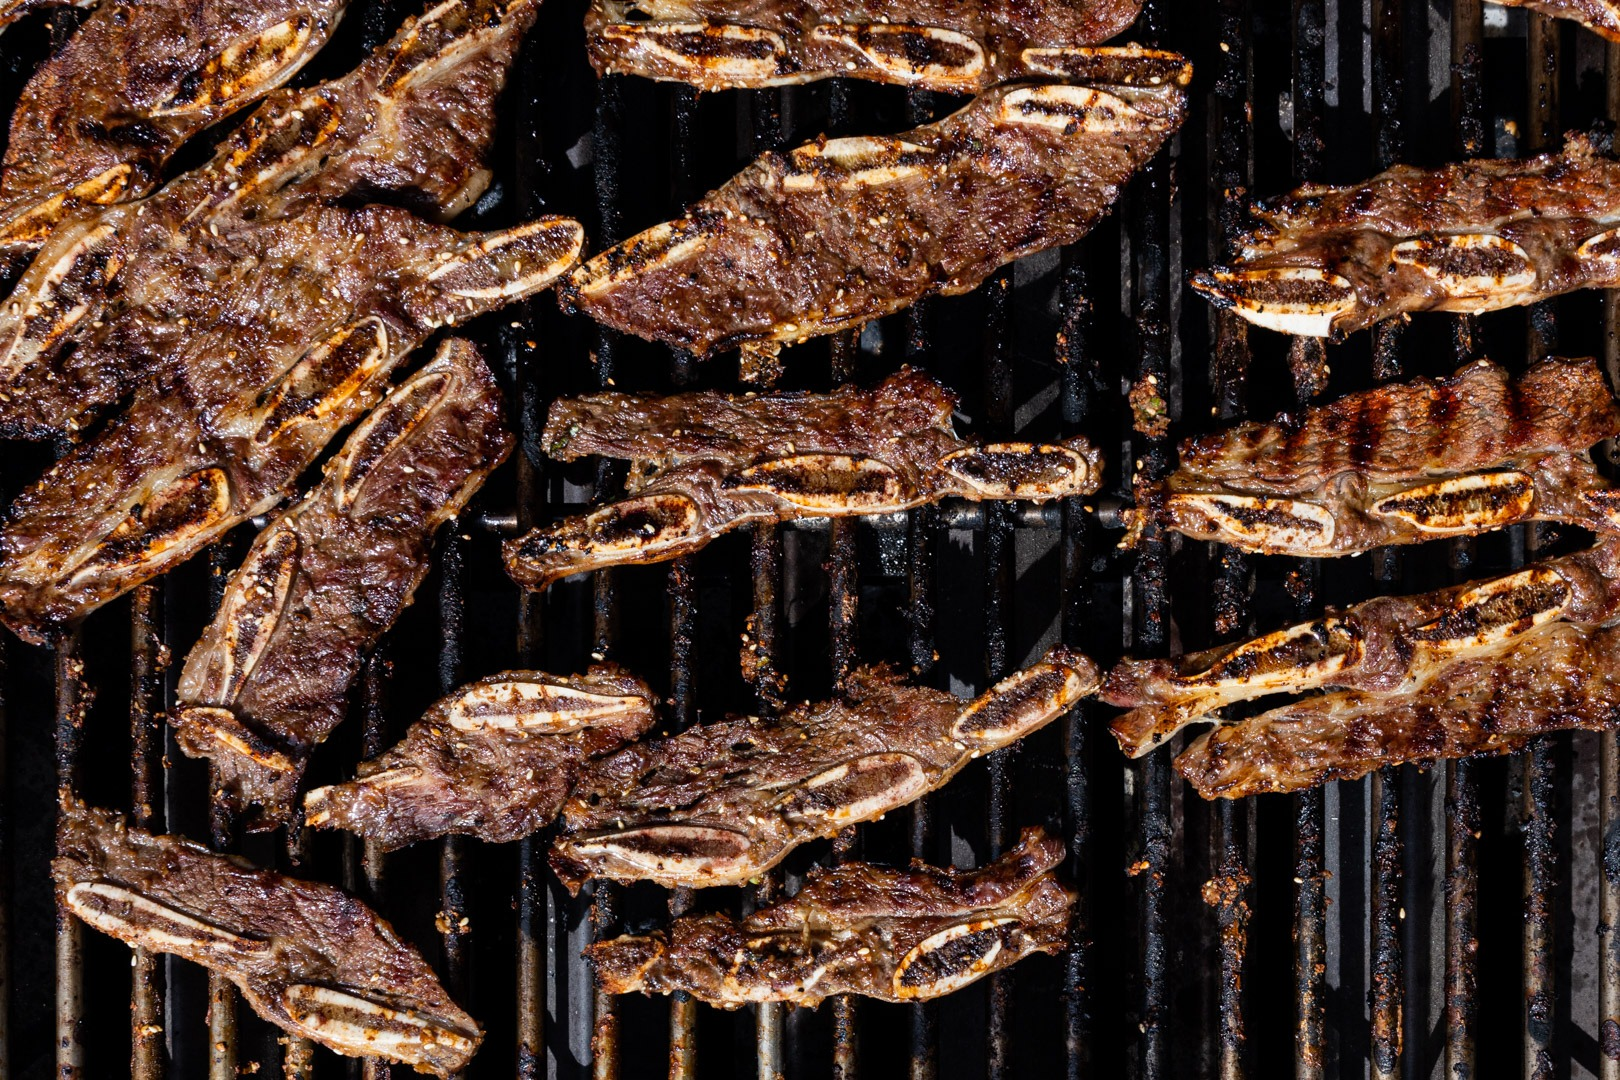 Deliciously browned, charry Korean short ribs on the grill